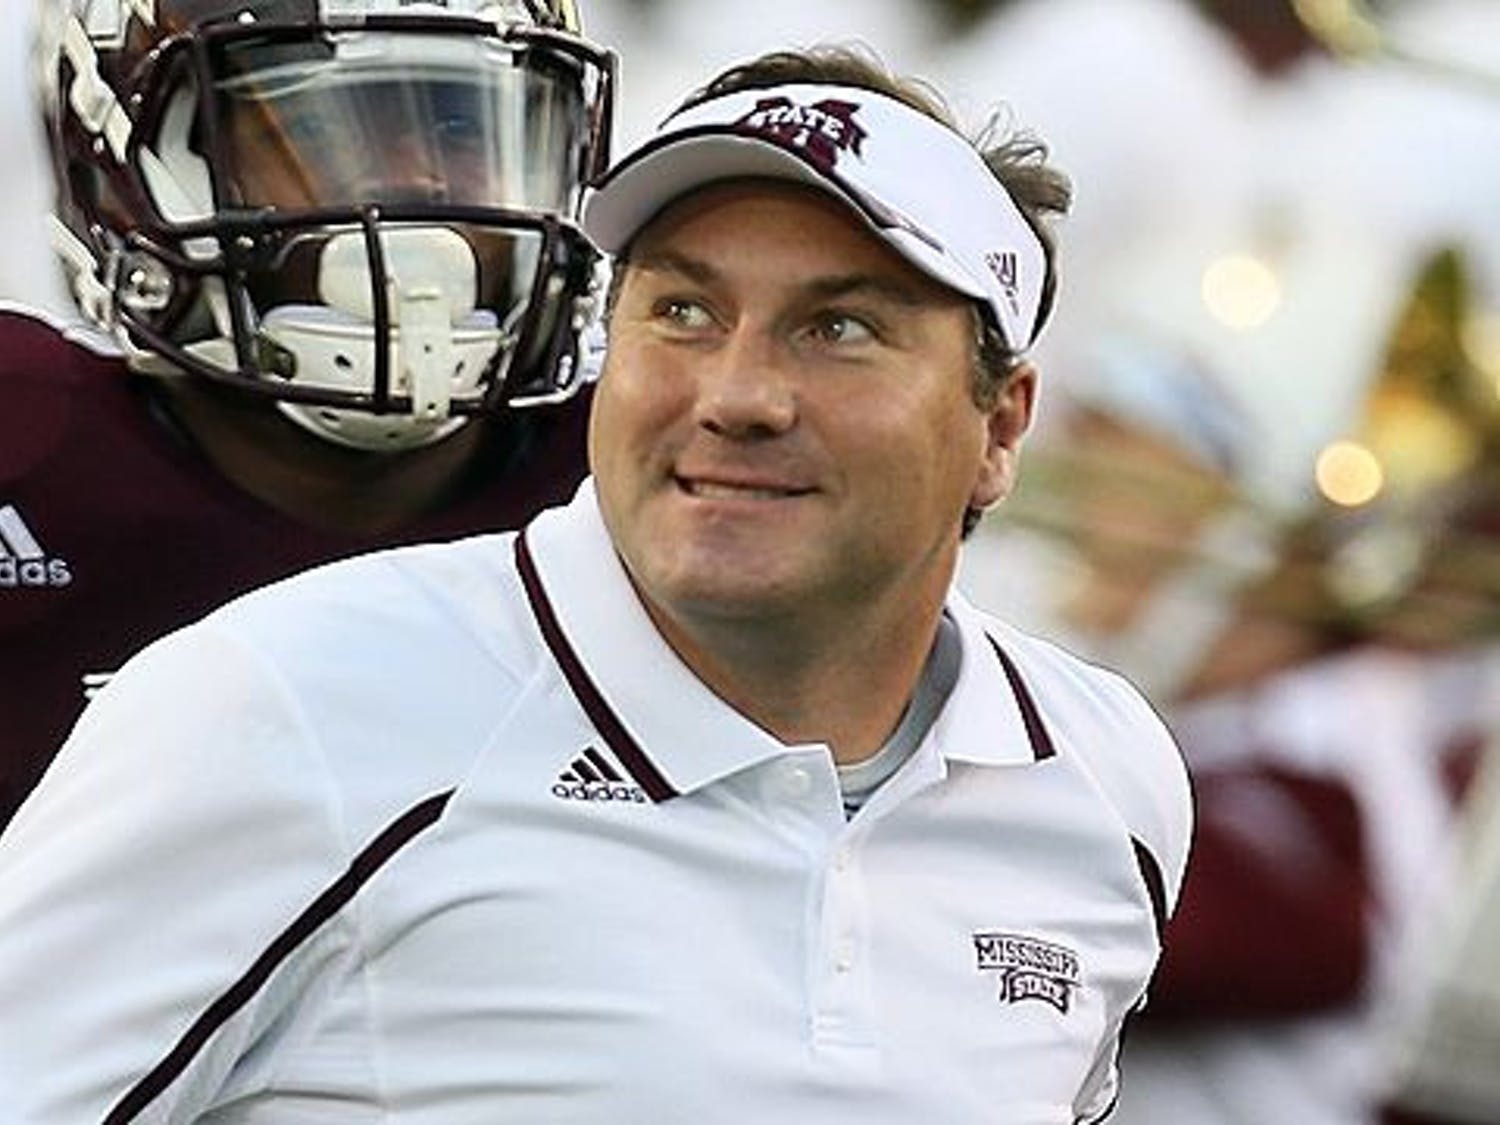 Dan Mullen has been hired as the next head coach of Florida's football program, the school confirmed on Sunday evening. Mullen was the offensive coordinator at UF from 2005 to 2008 and spent the past nine seasons as head coach at Mississippi State.